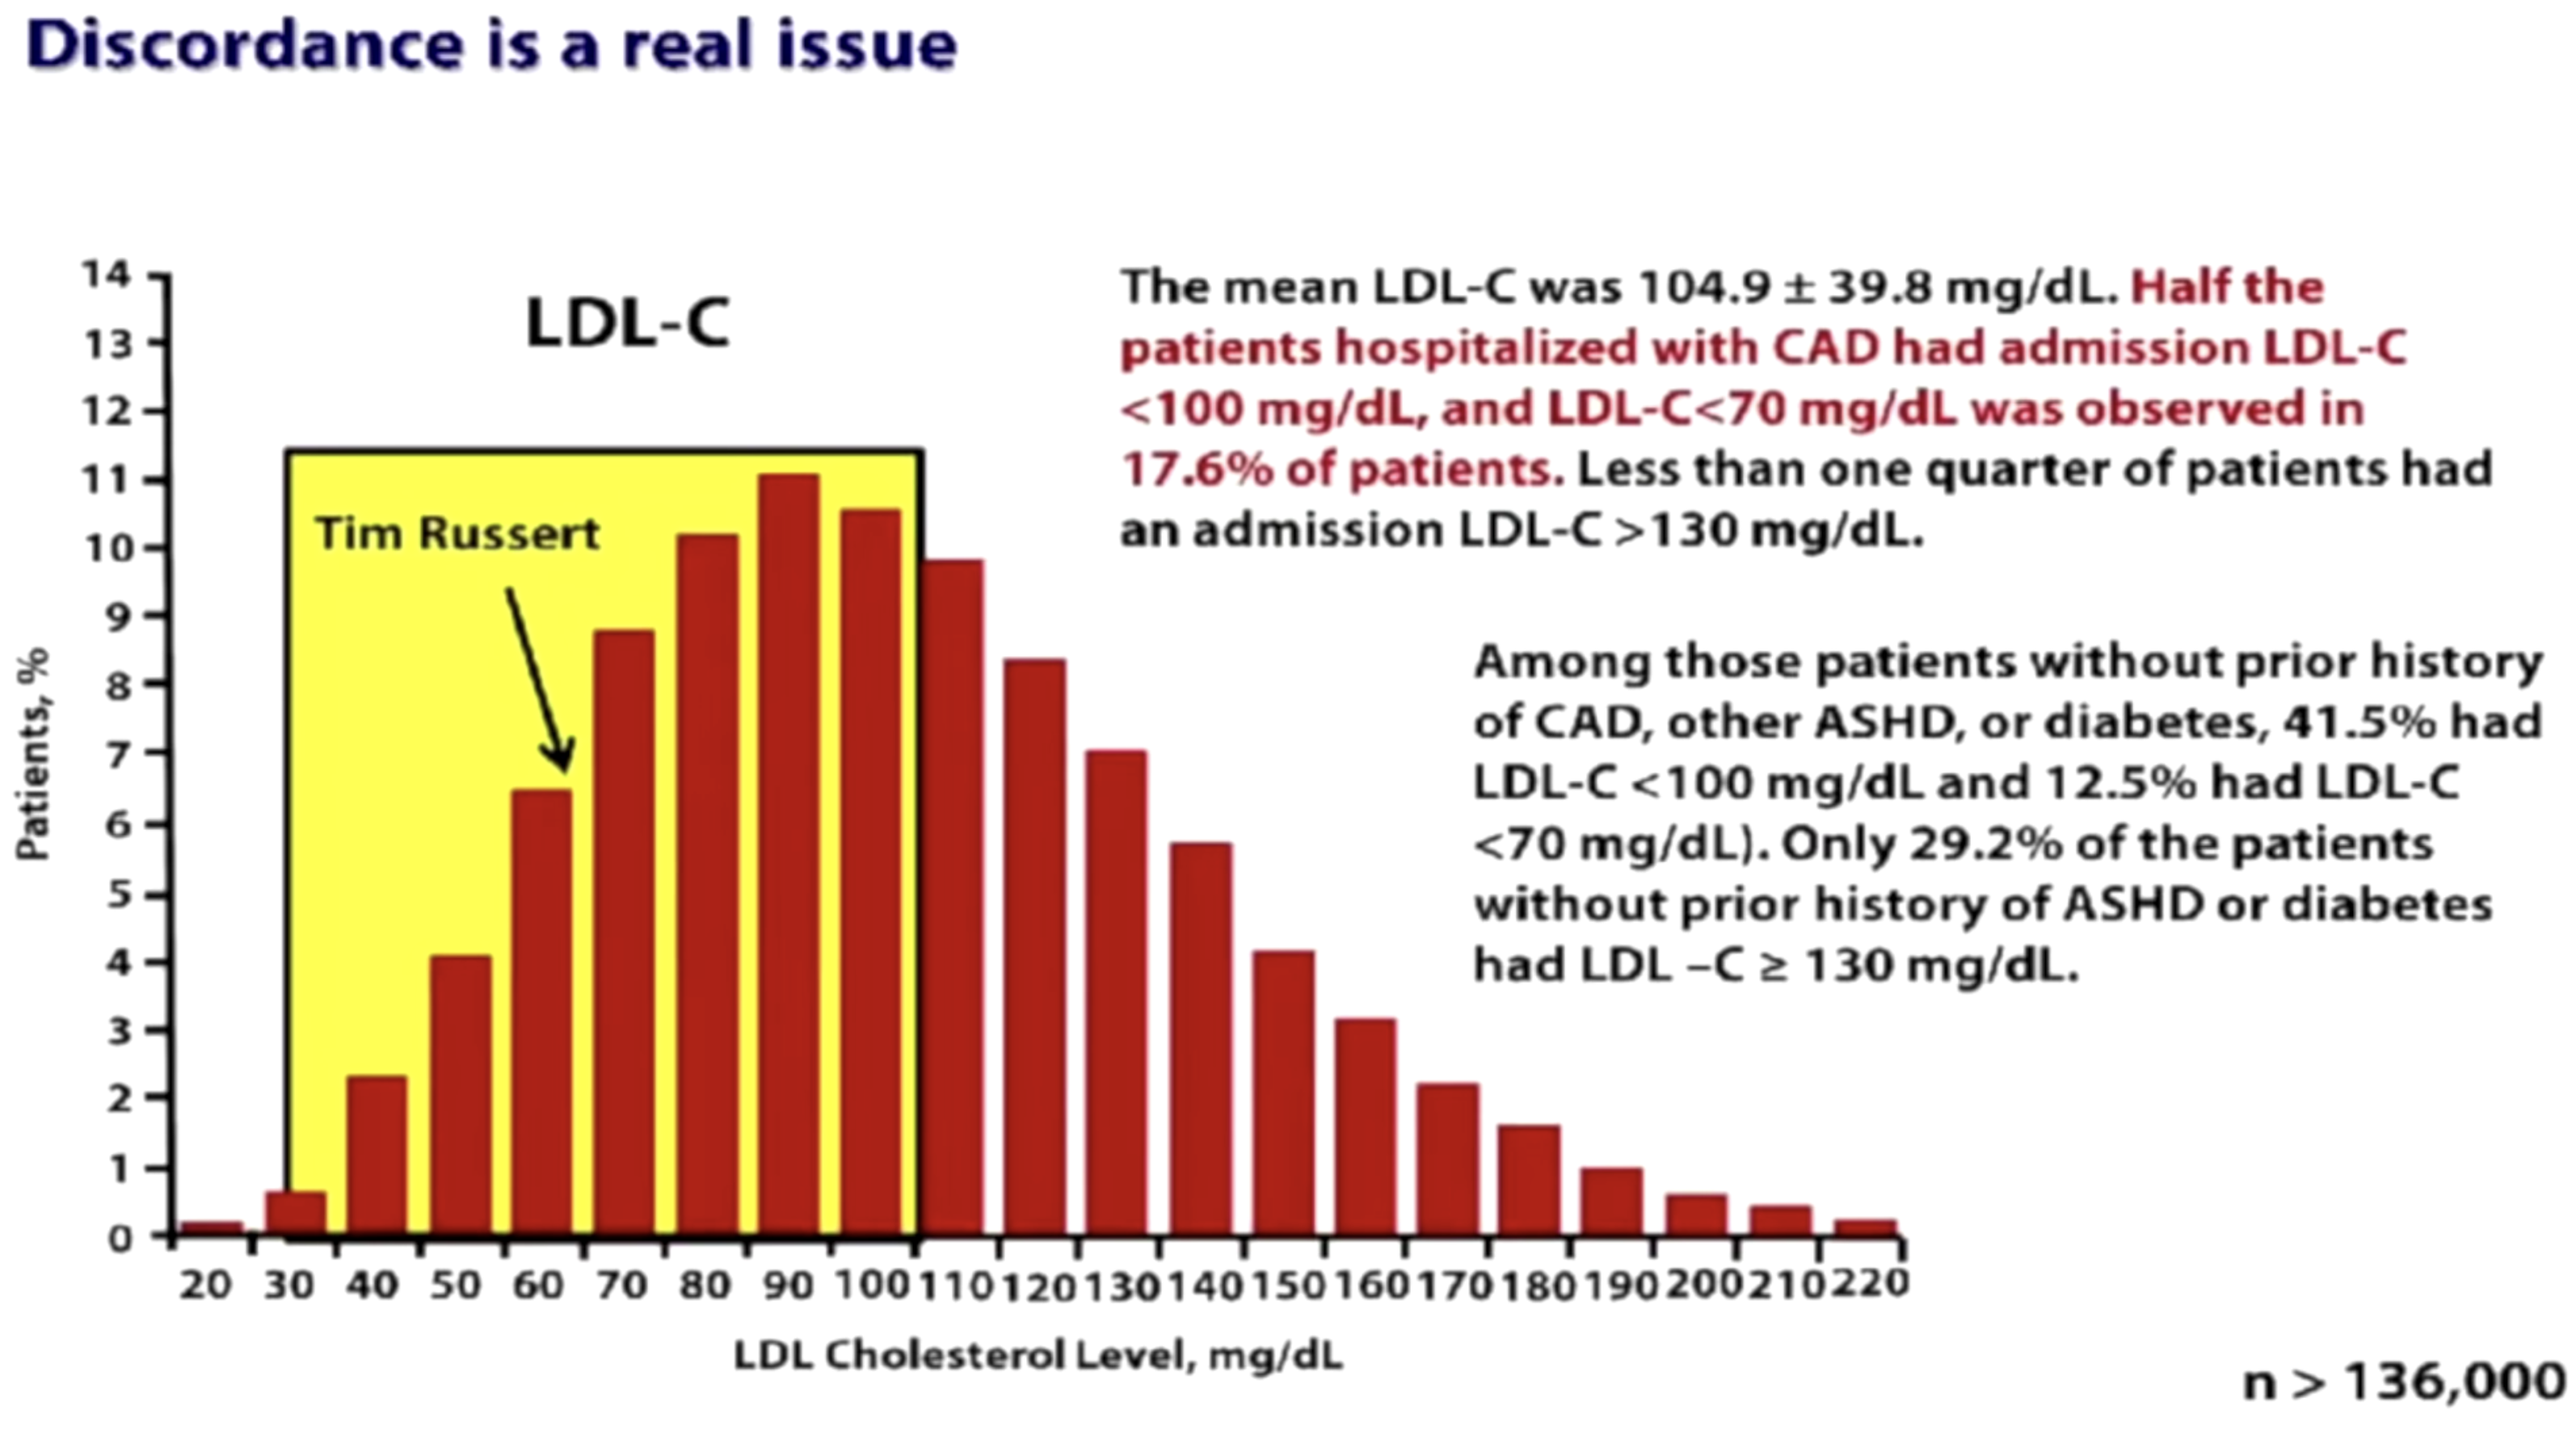 Of 136,000 patients admitted to a hospital for a coronary artery event, nearly 50% had low LDL.